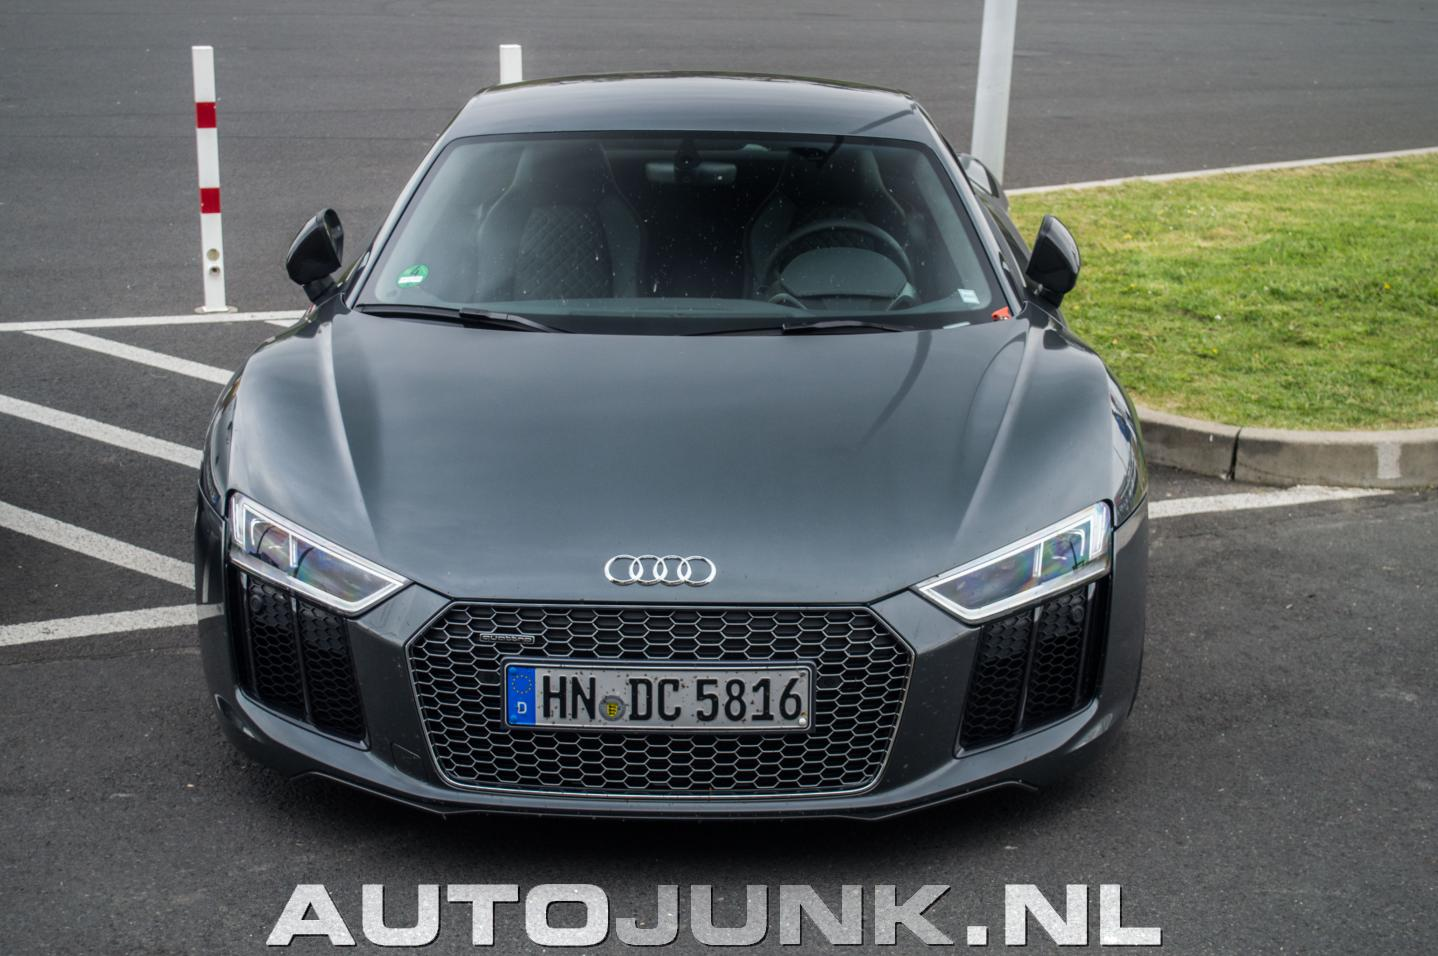 2015 audi r8 gt release date and price 2015 concept cars autos post. Black Bedroom Furniture Sets. Home Design Ideas